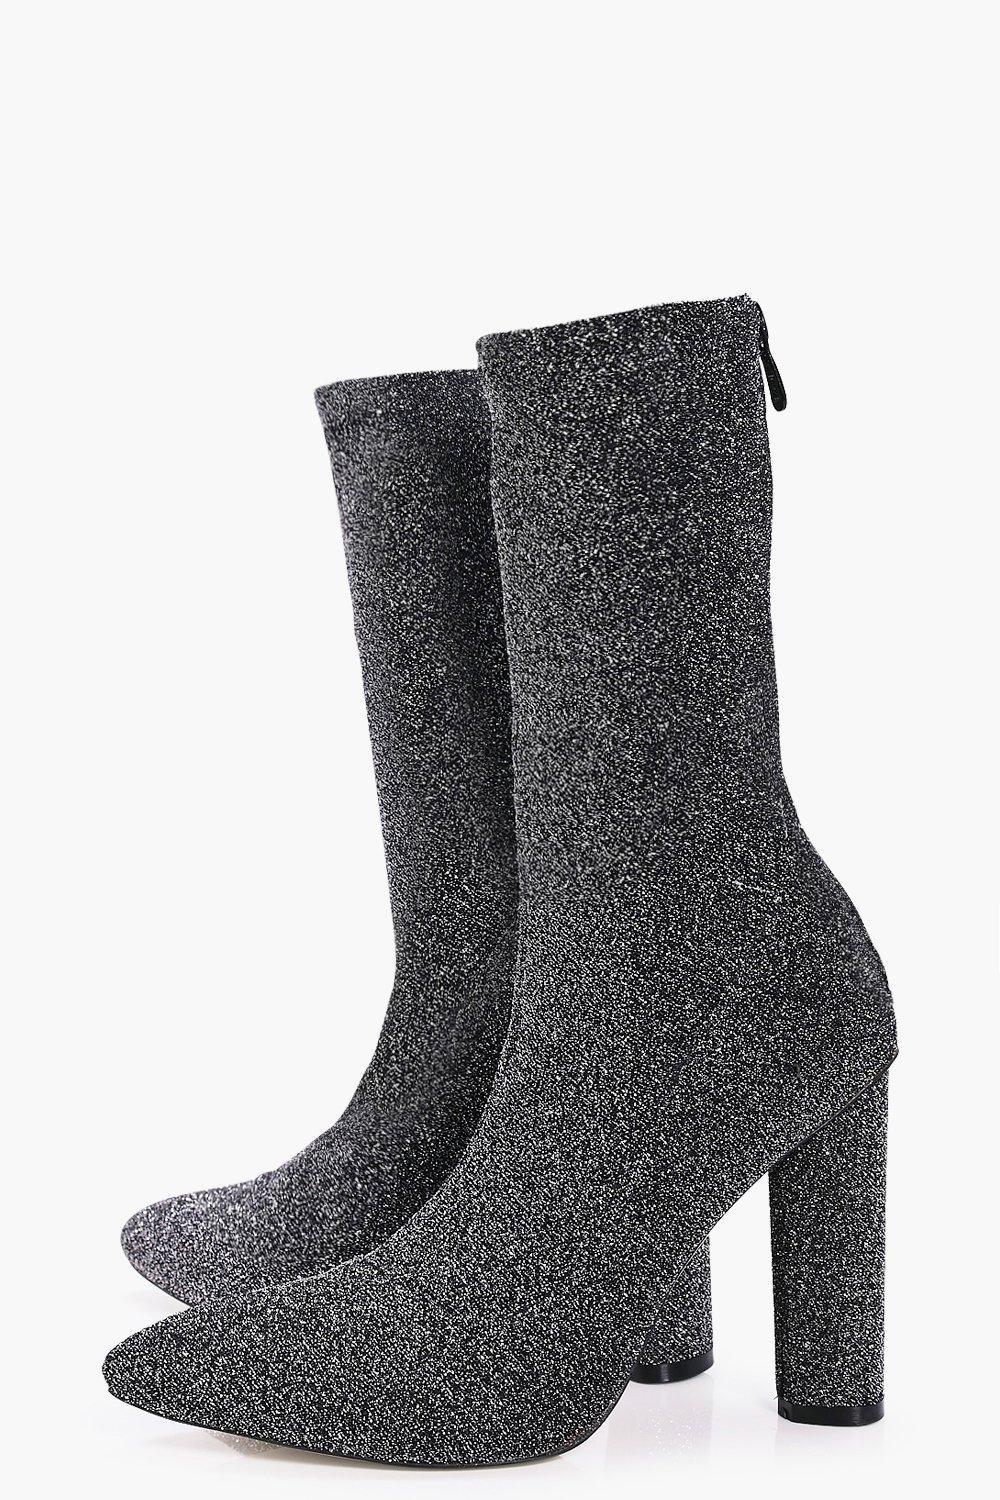 Boohoo Tilly Metallic Knitted Pointed Sock Boot